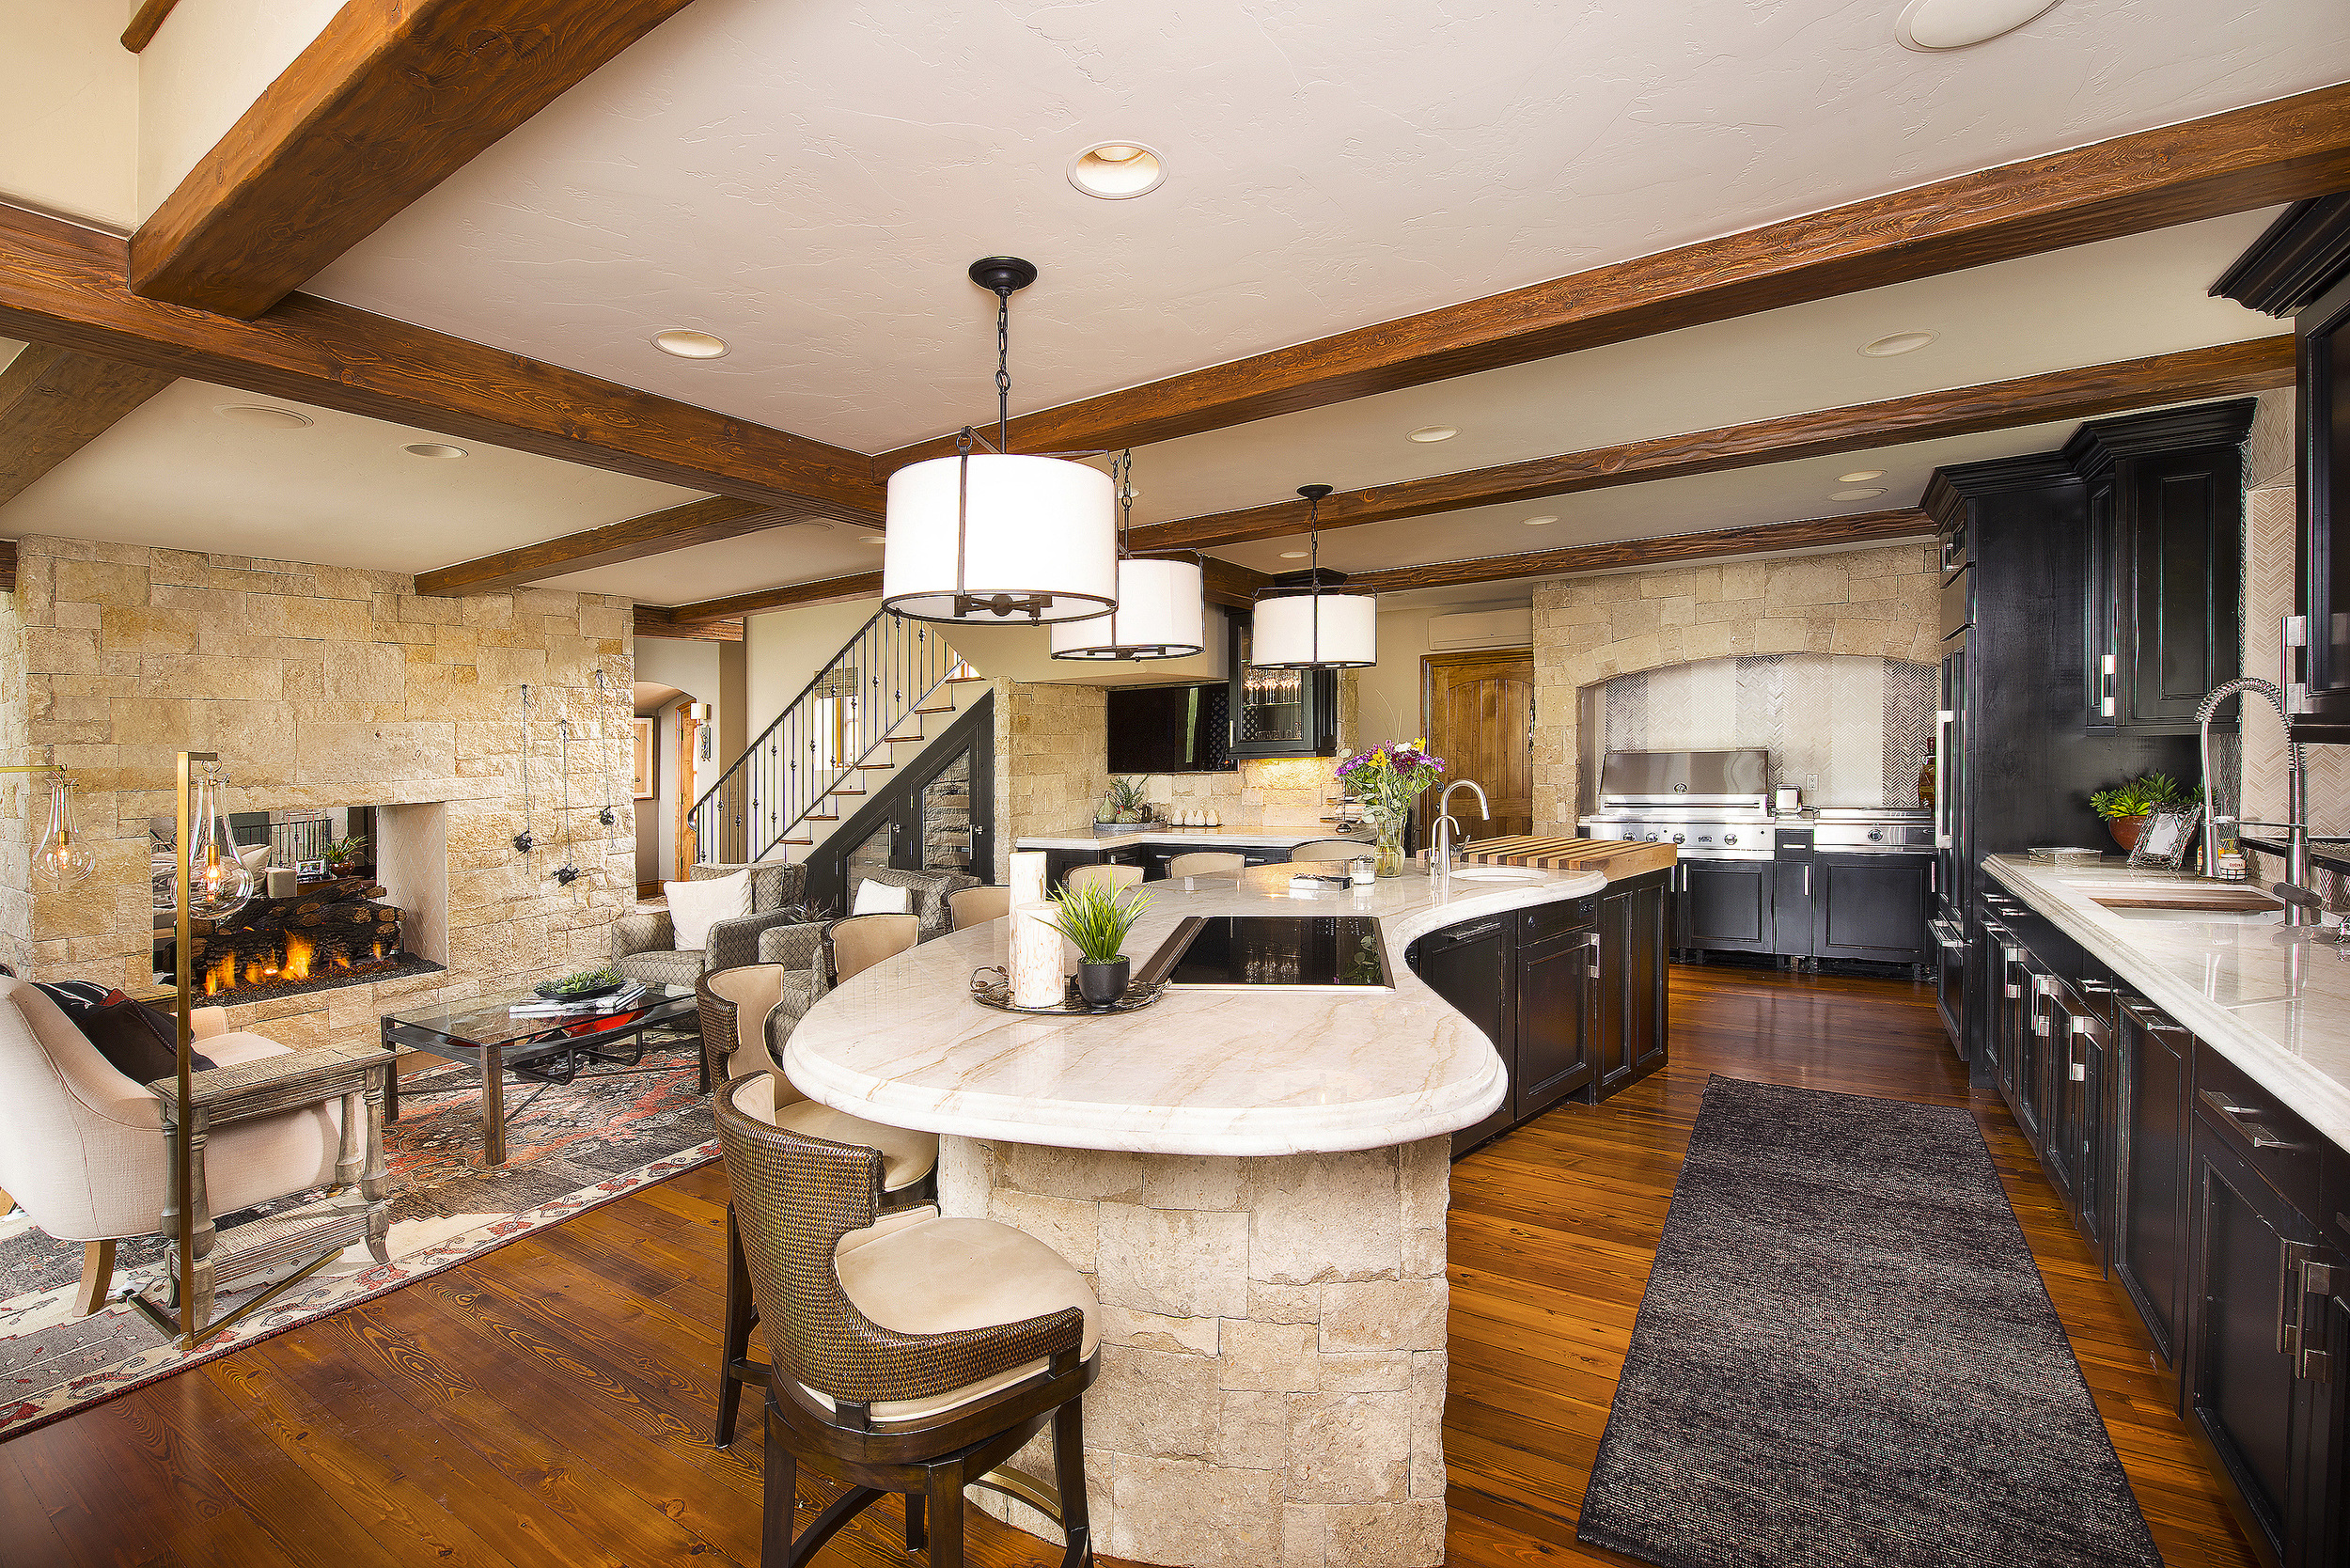 118CastlePeak_Kitchen_10.jpg